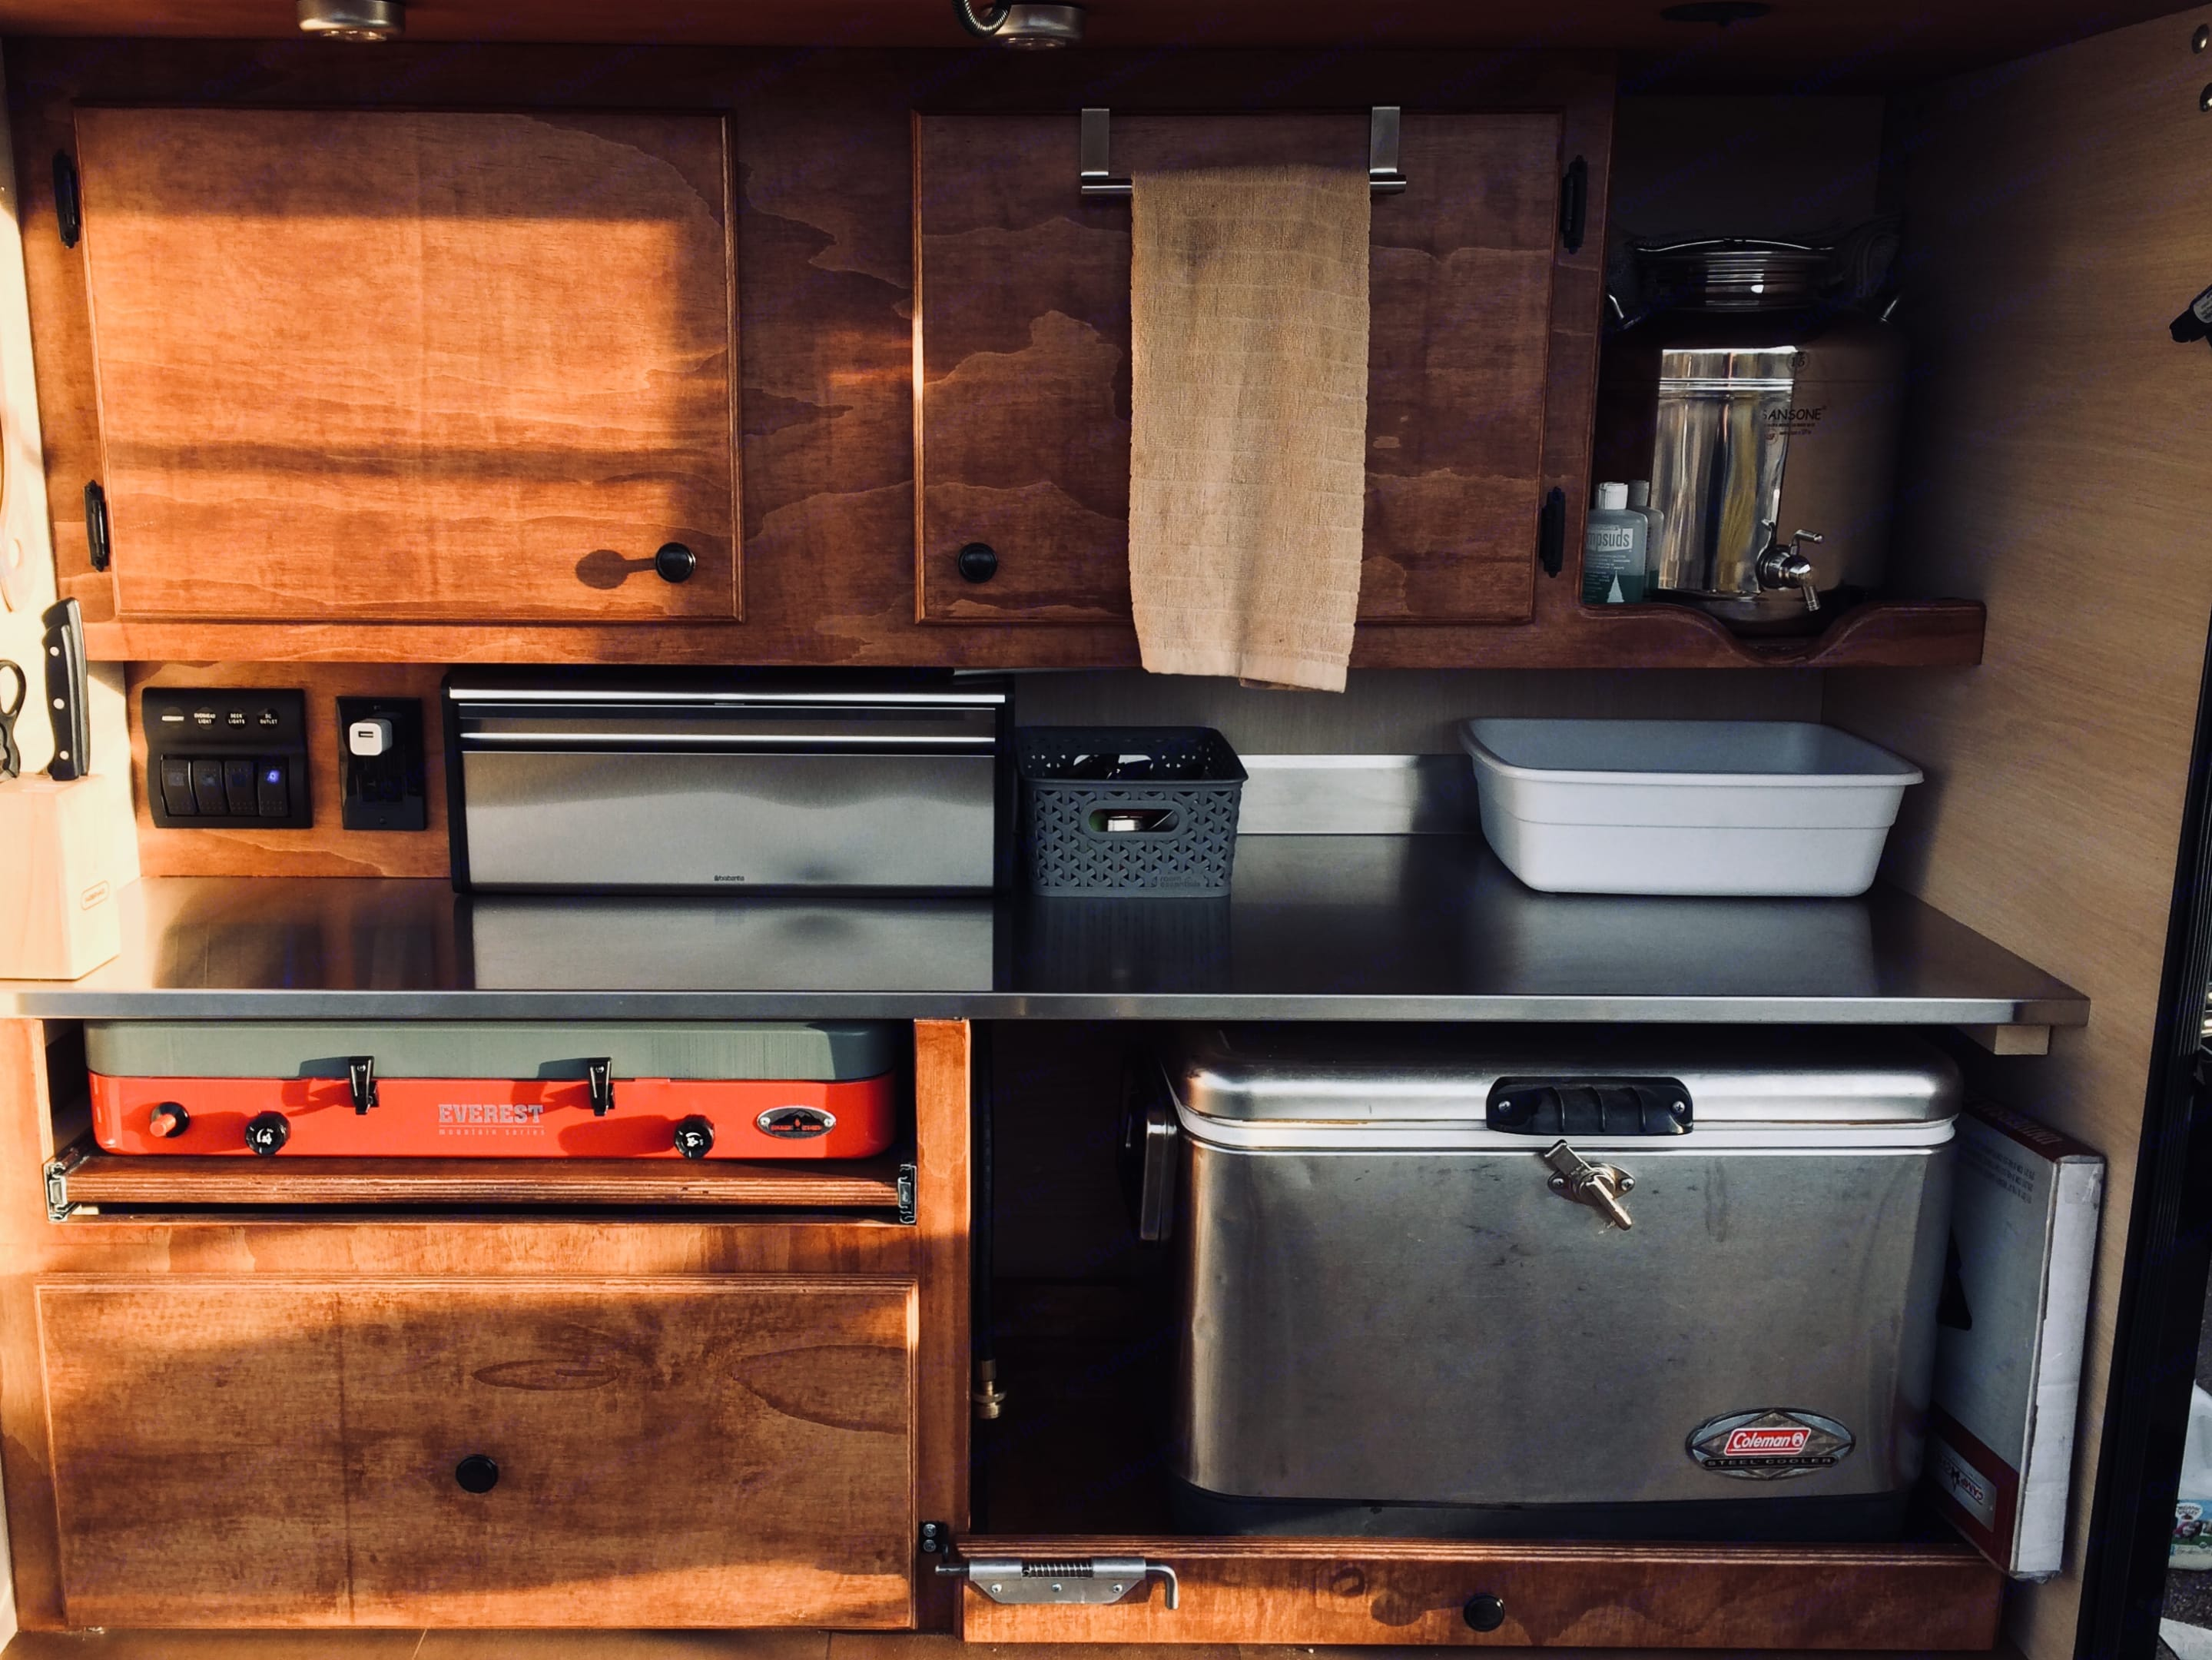 The outdoor camp kitchen is our favorite part of this trailer. Comes loaded with everything you need. All cooking and eating utensils, travel mugs, cups, French press,  kettle, plates, bowls, amazing nesting cook ware, griddle, cutting boards, knife set and a refillable 4 gallon drinking water dispenser, Even dish towels, sponge, salt & pepper, spray oil, spices, aluminum foil, Ziploc bags and trash bags are all included. There is tons of storage for all your food and a bread box. . Alpine Other 2017